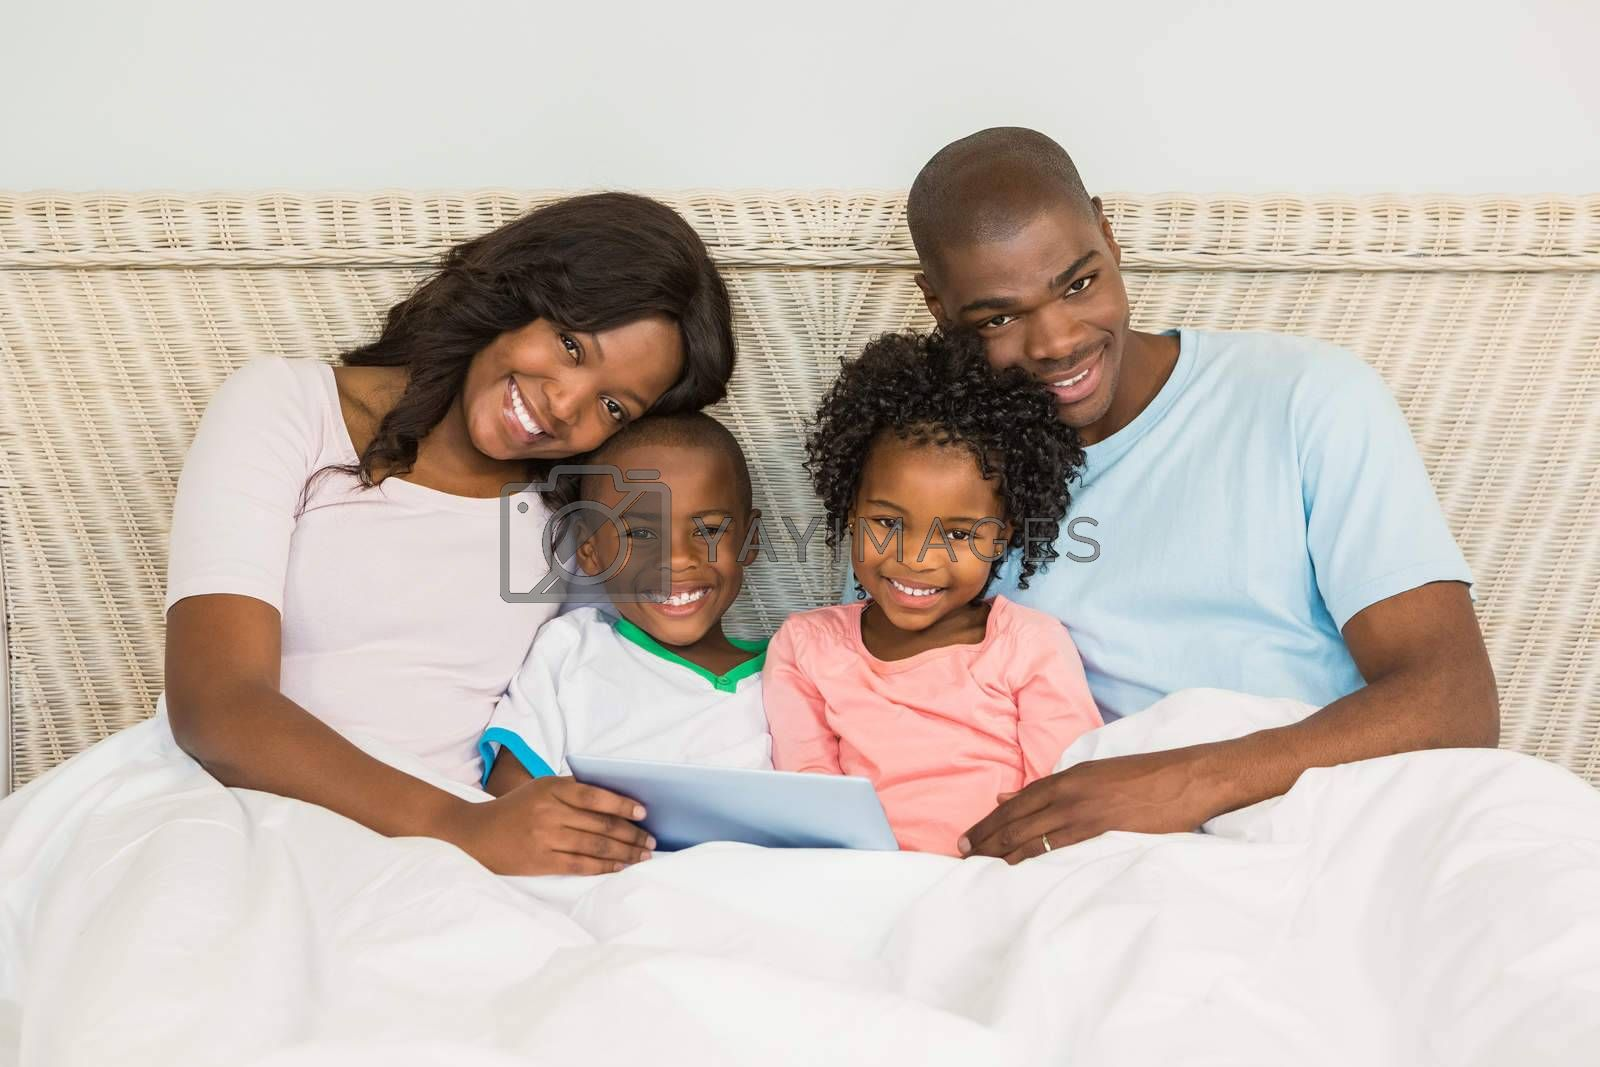 Family with digital tablet in bed by Wavebreakmedia